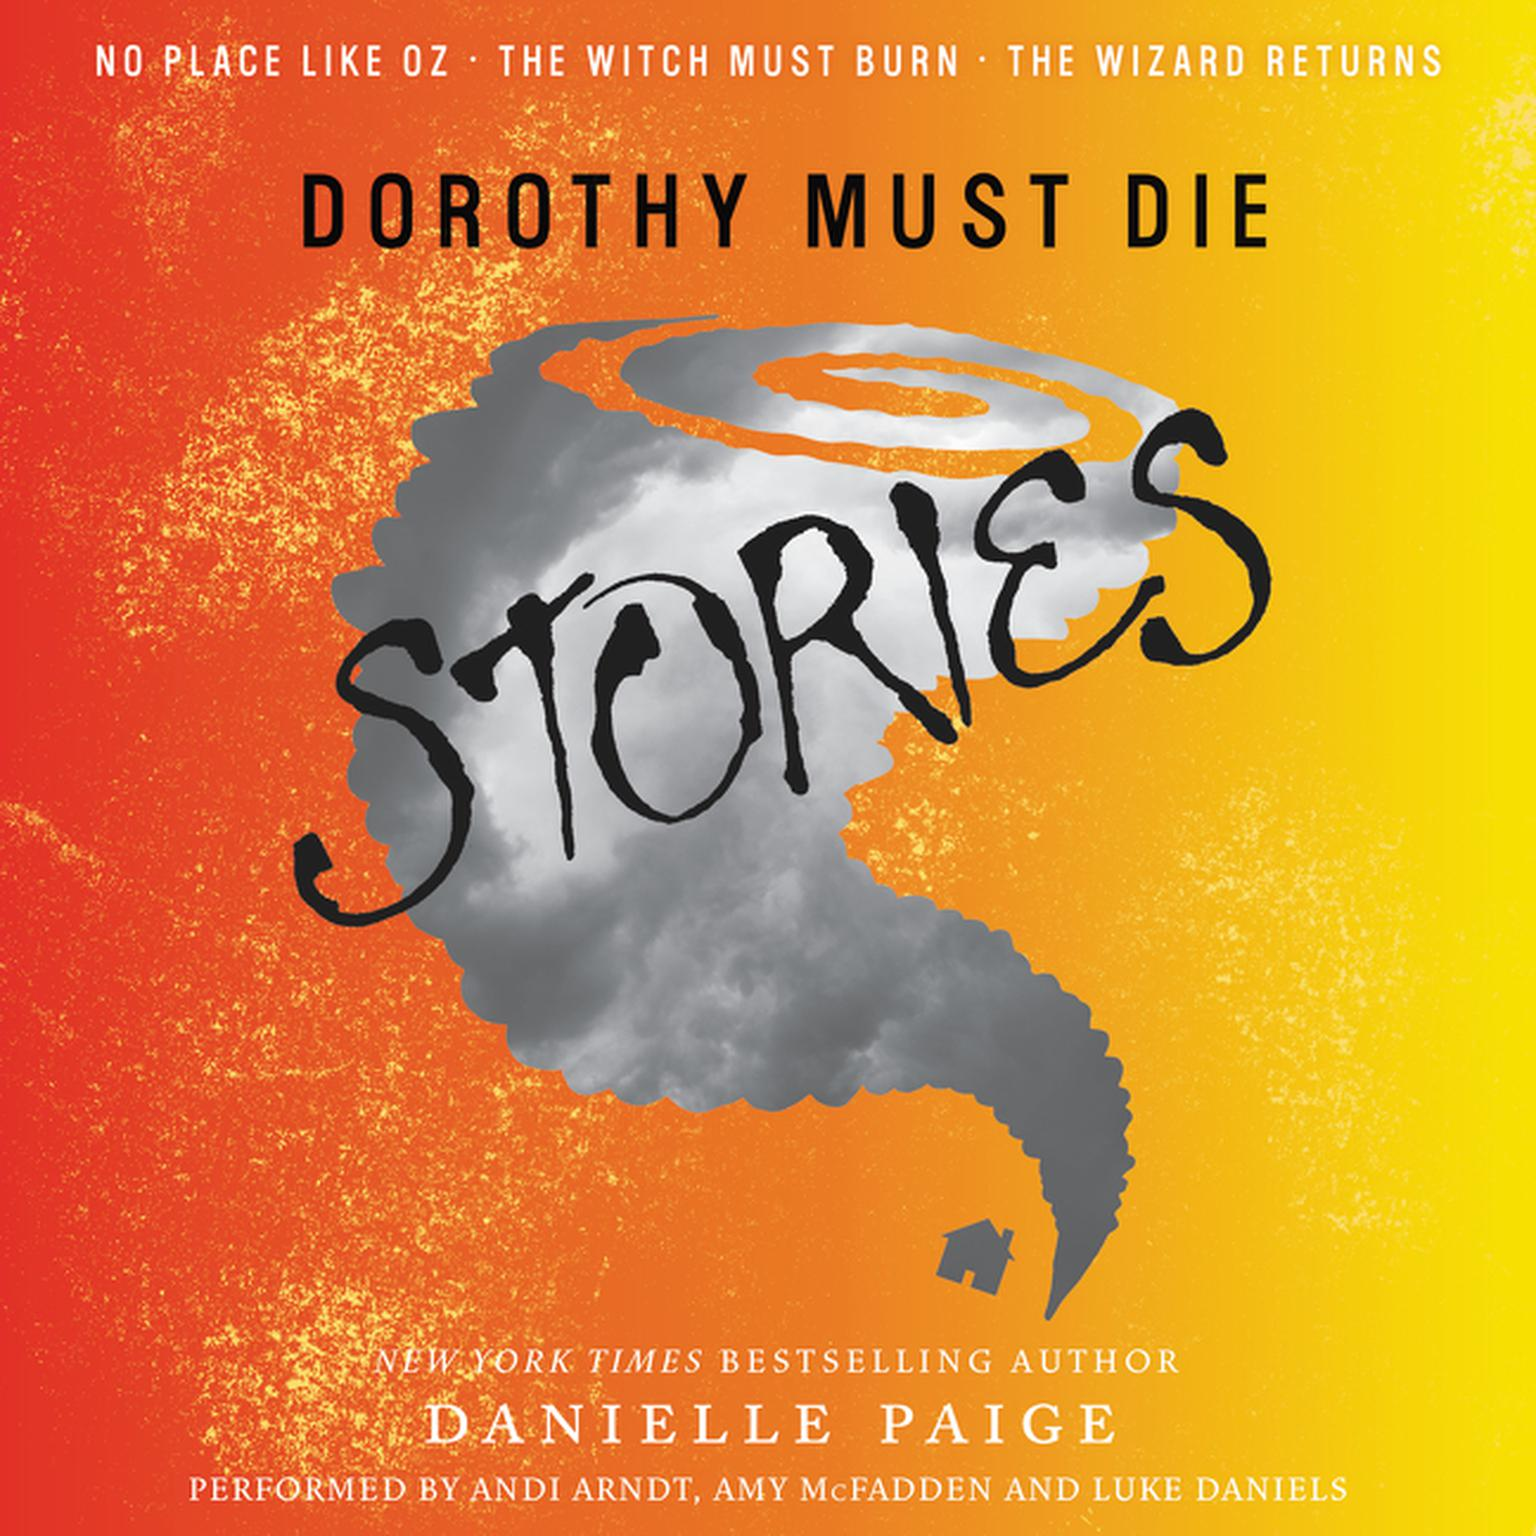 Dorothy Must Die Stories: No Place like Oz, The Witch Must Burn, The Wizard Returns Audiobook, by Danielle Paige